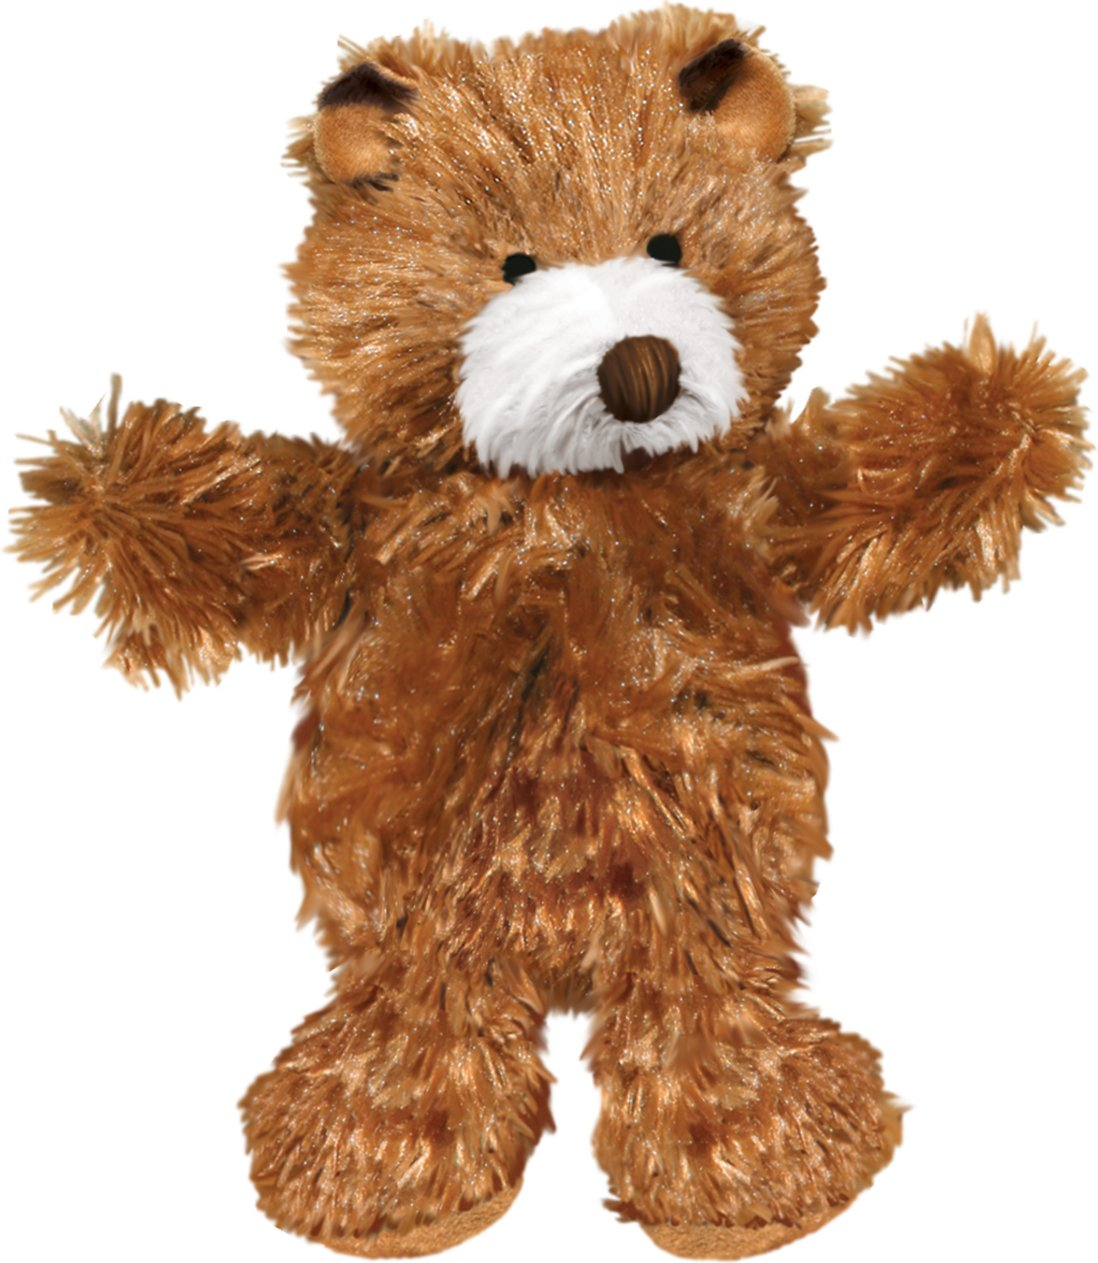 KONG Dr. Noy's Teddy Bear Dog Toy Image